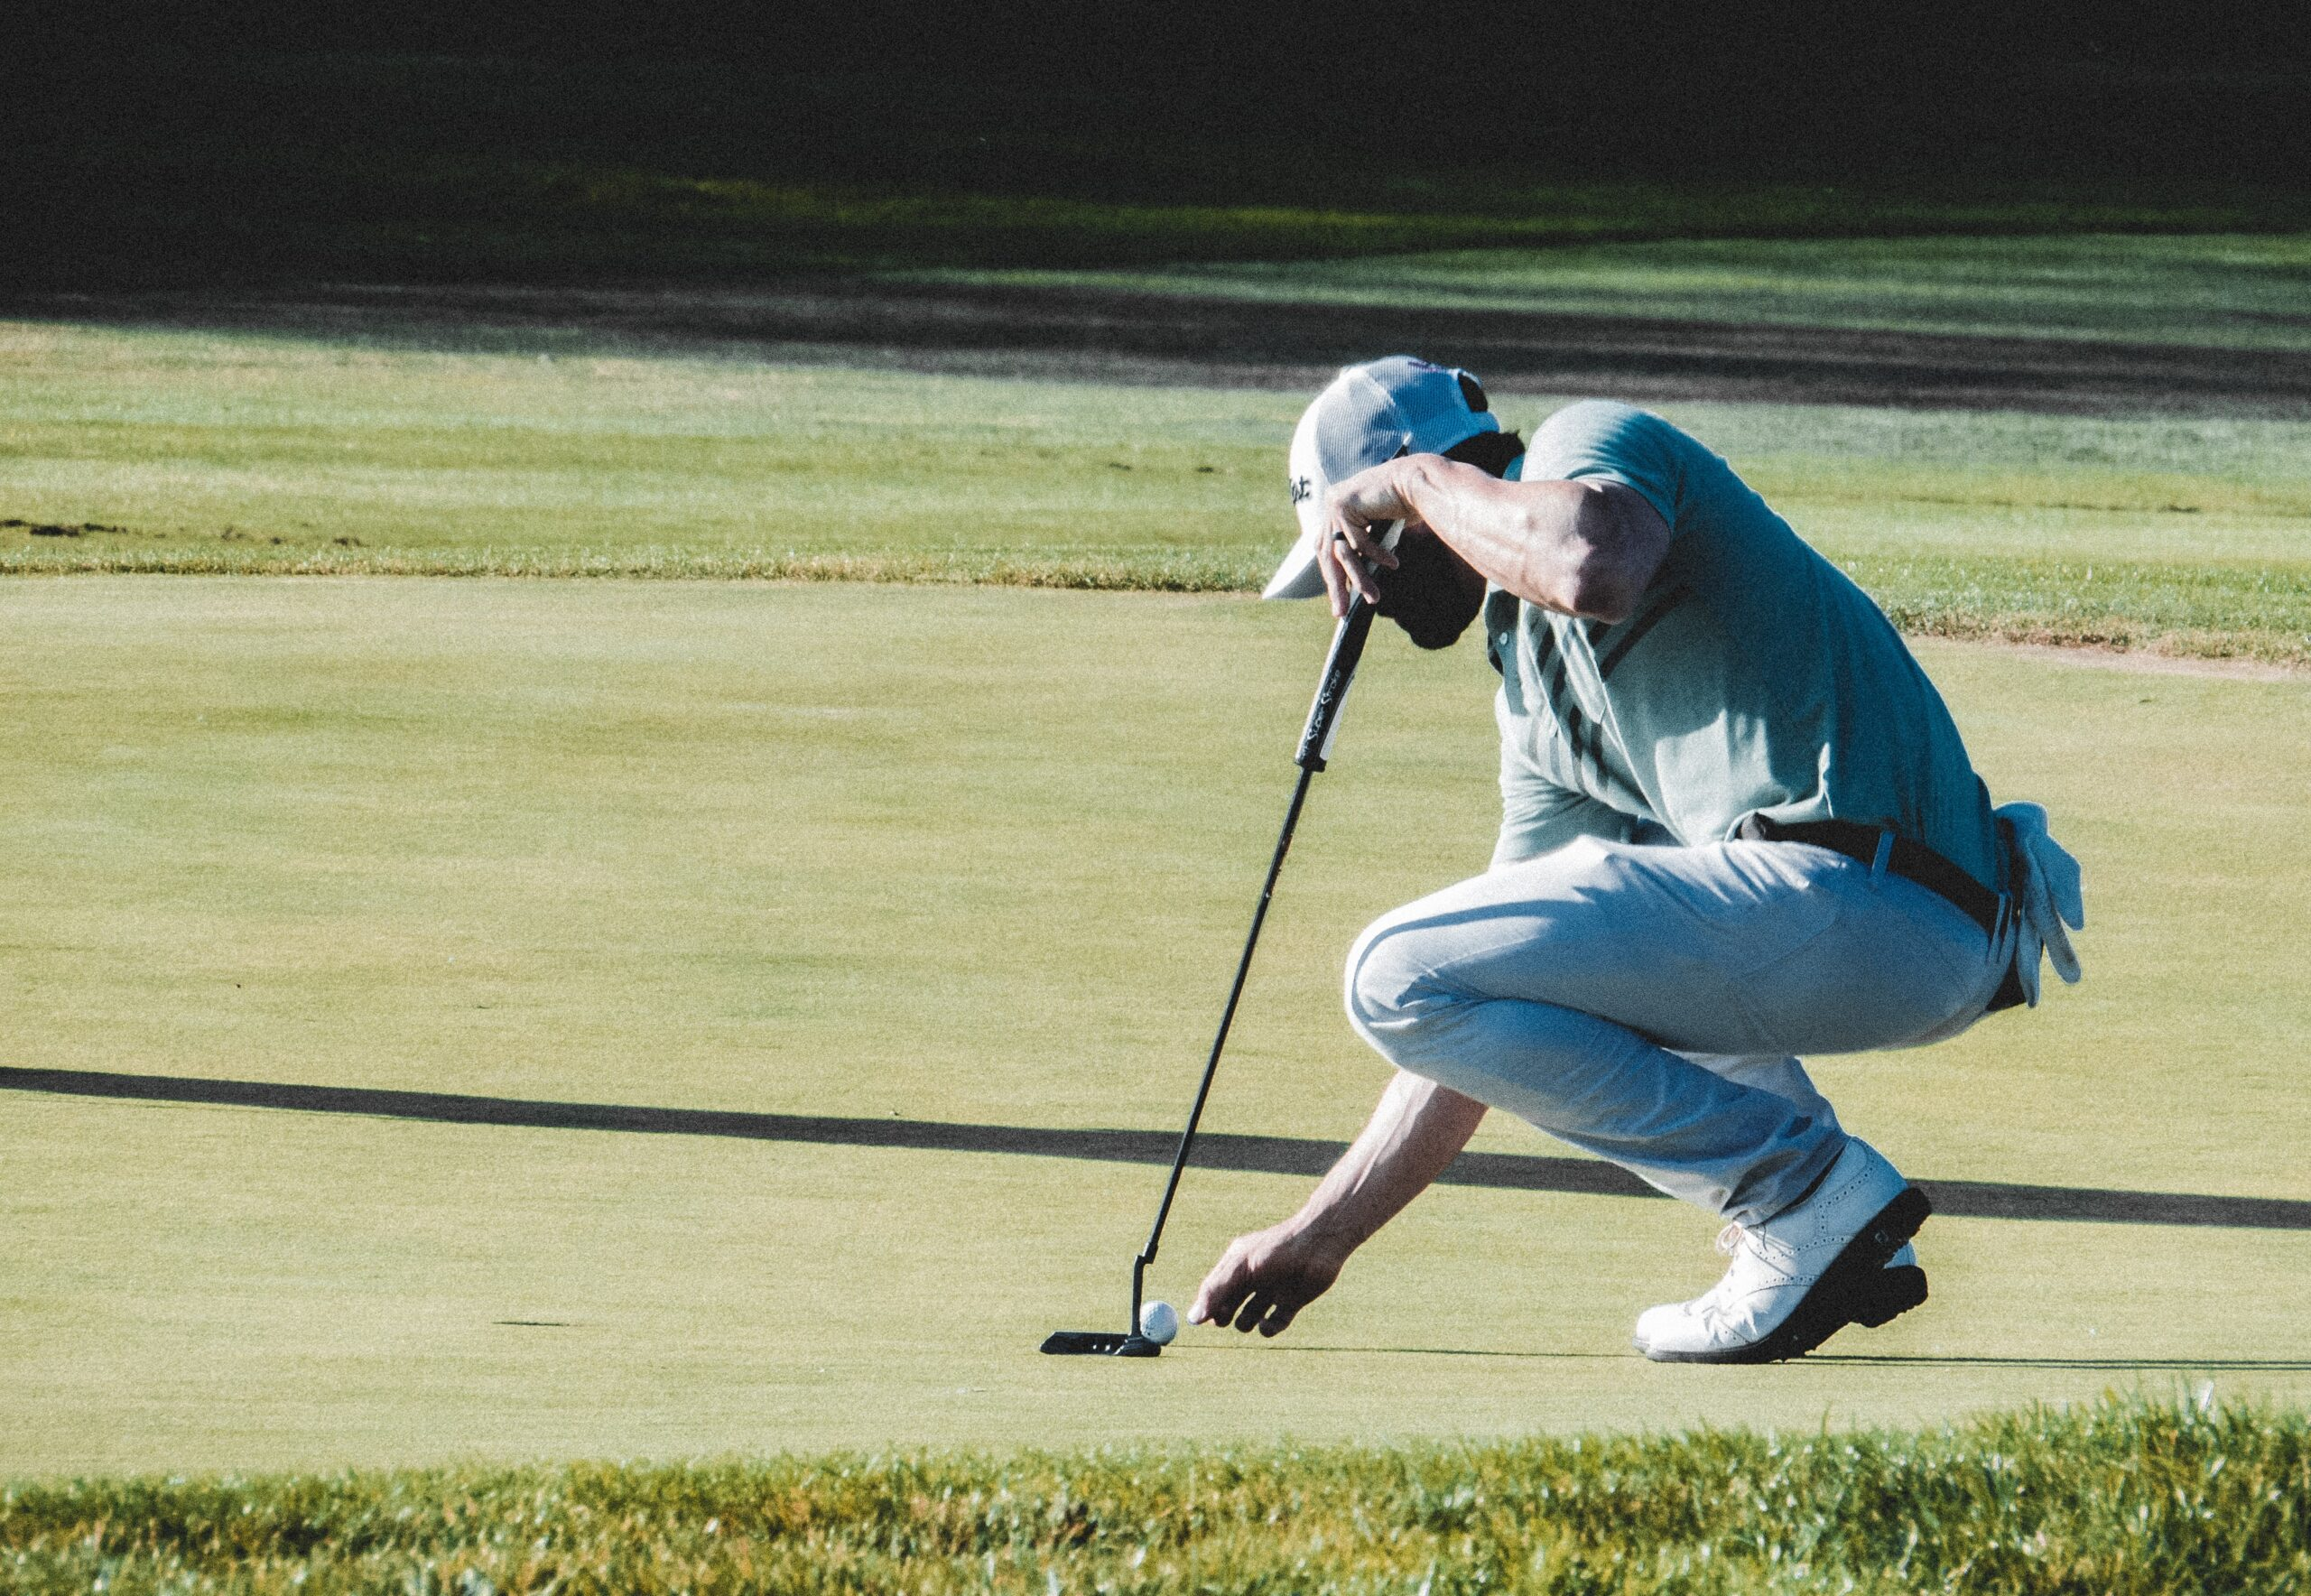 What are the top ways golfers can avoid 3-putting?